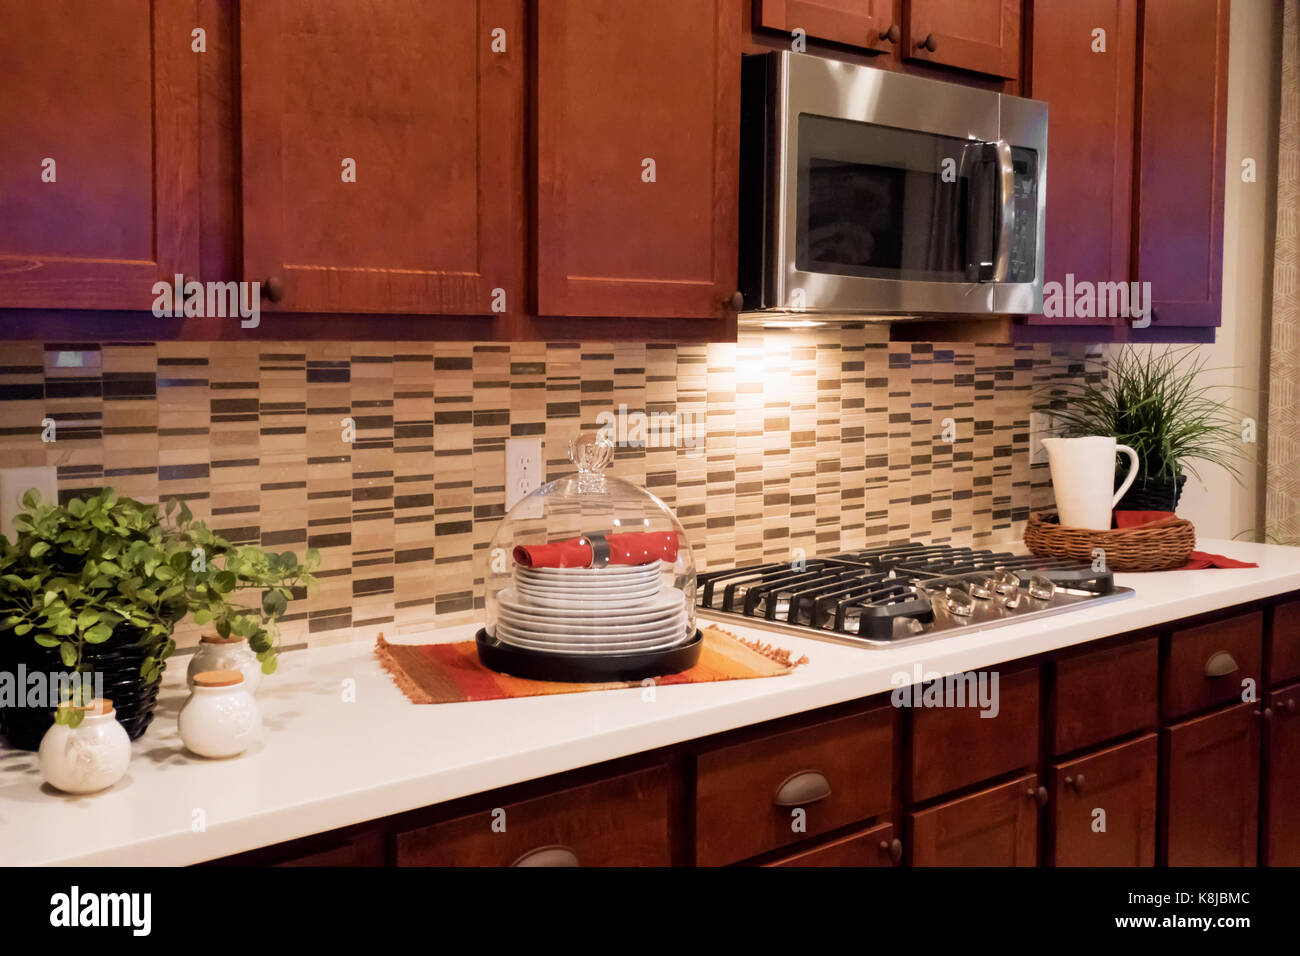 https www alamy com stock image a kitchen countertop with a stove top microwave with a beautiful backsplash 160214892 html